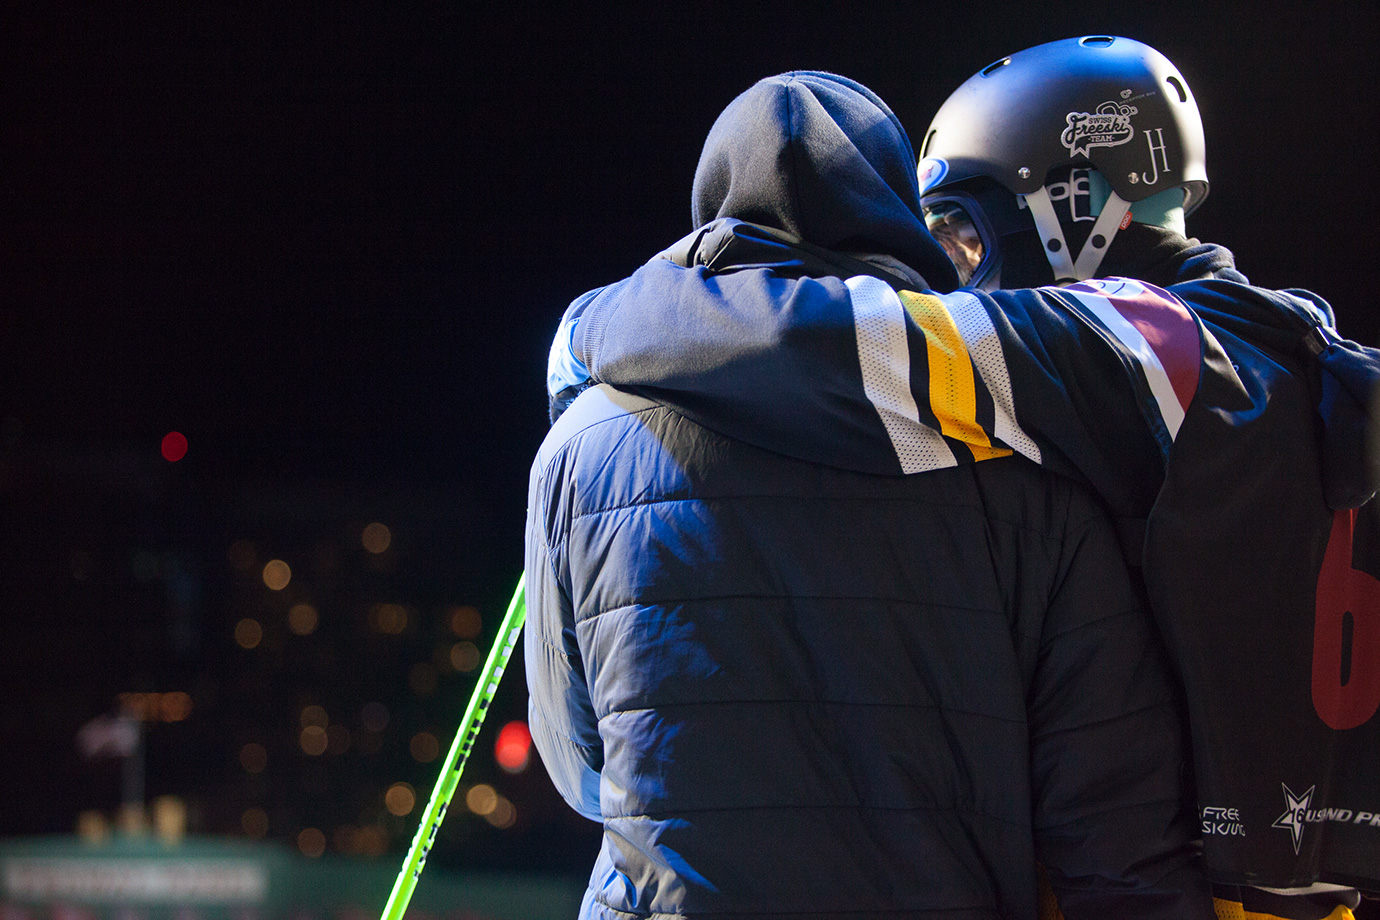 Boston favorite Jonas Hunziker embraces a member of his crew right before his final run.